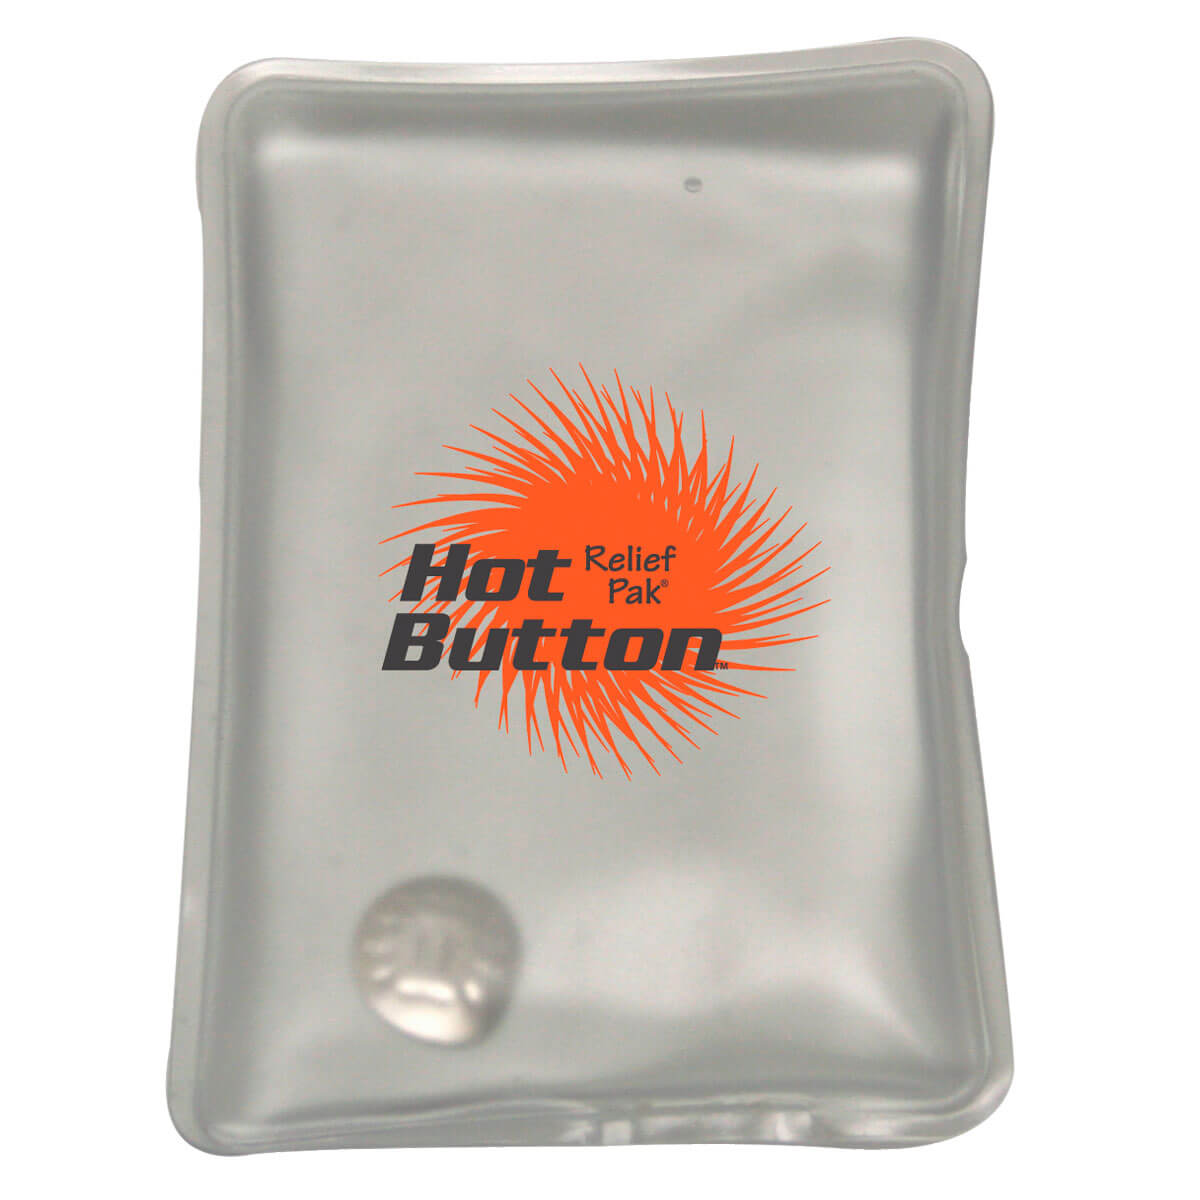 Relief Pak® Hot Button® Reusable Instant Hot Compress small